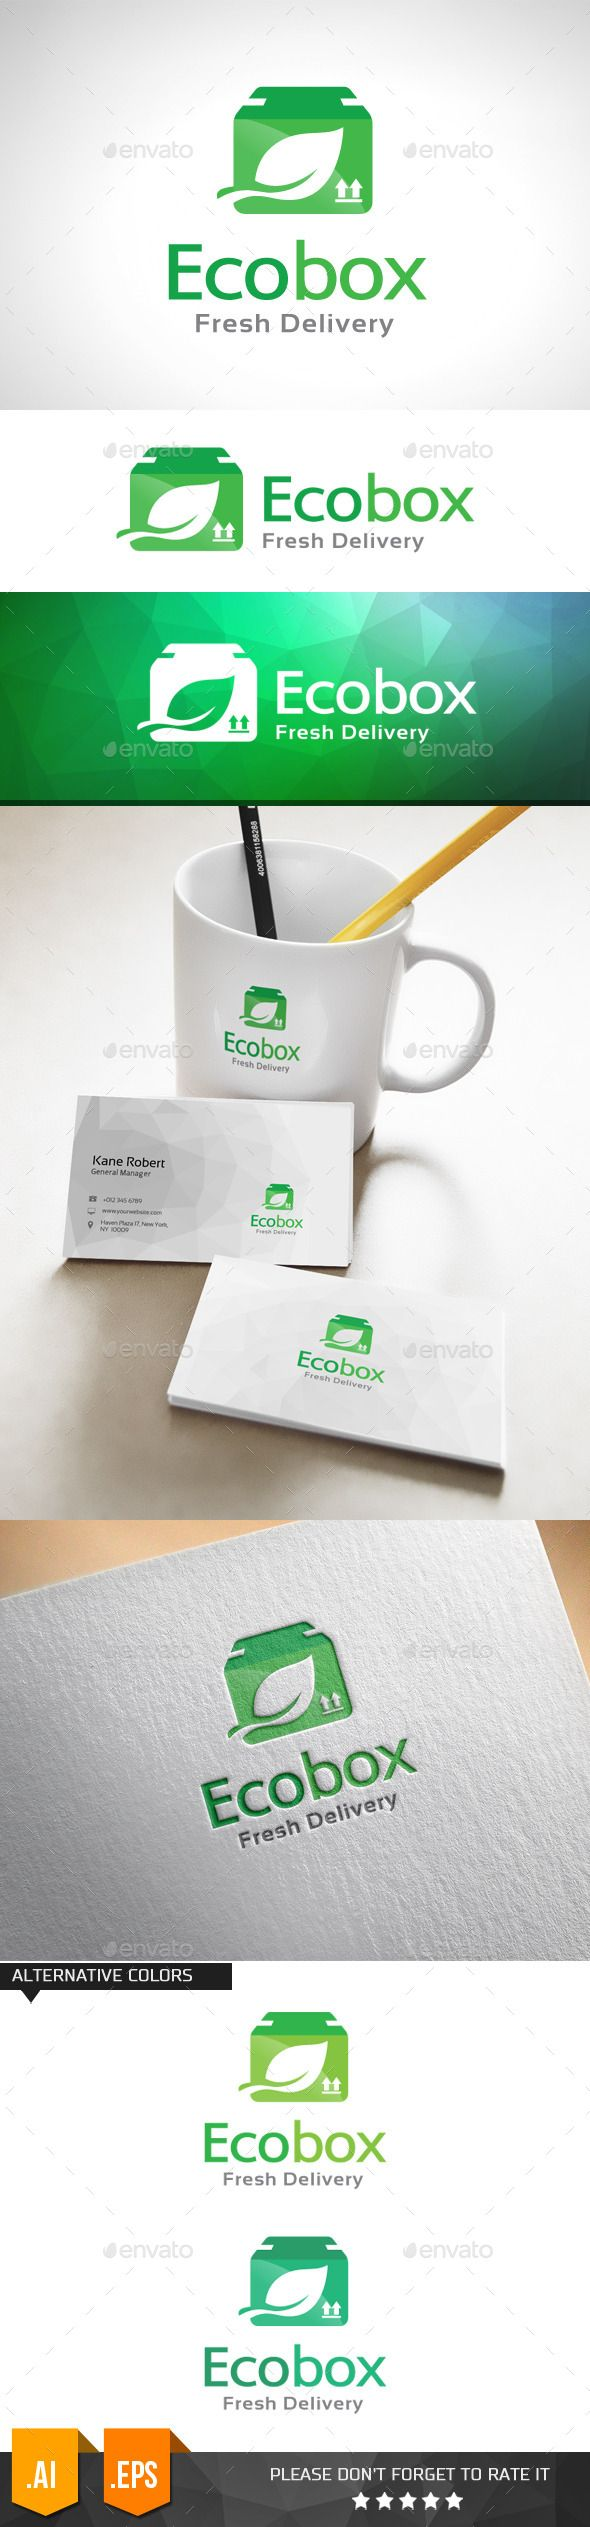 Eco Box Fresh Delivery Logo Template - Objects Logo Templates